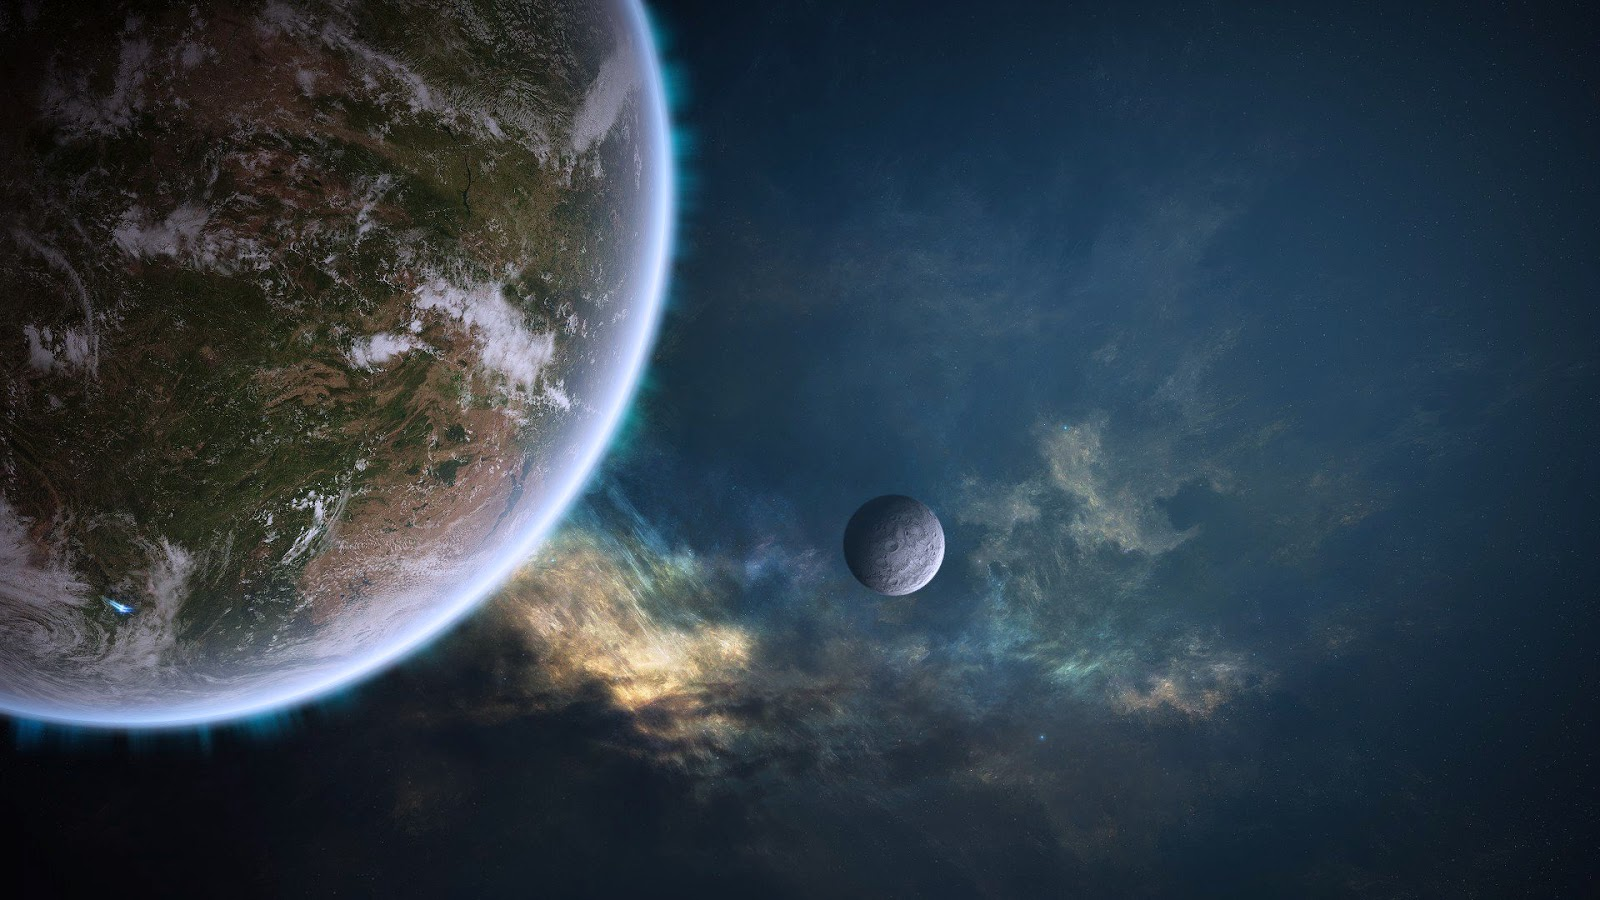 Planet in Space Wallpaper